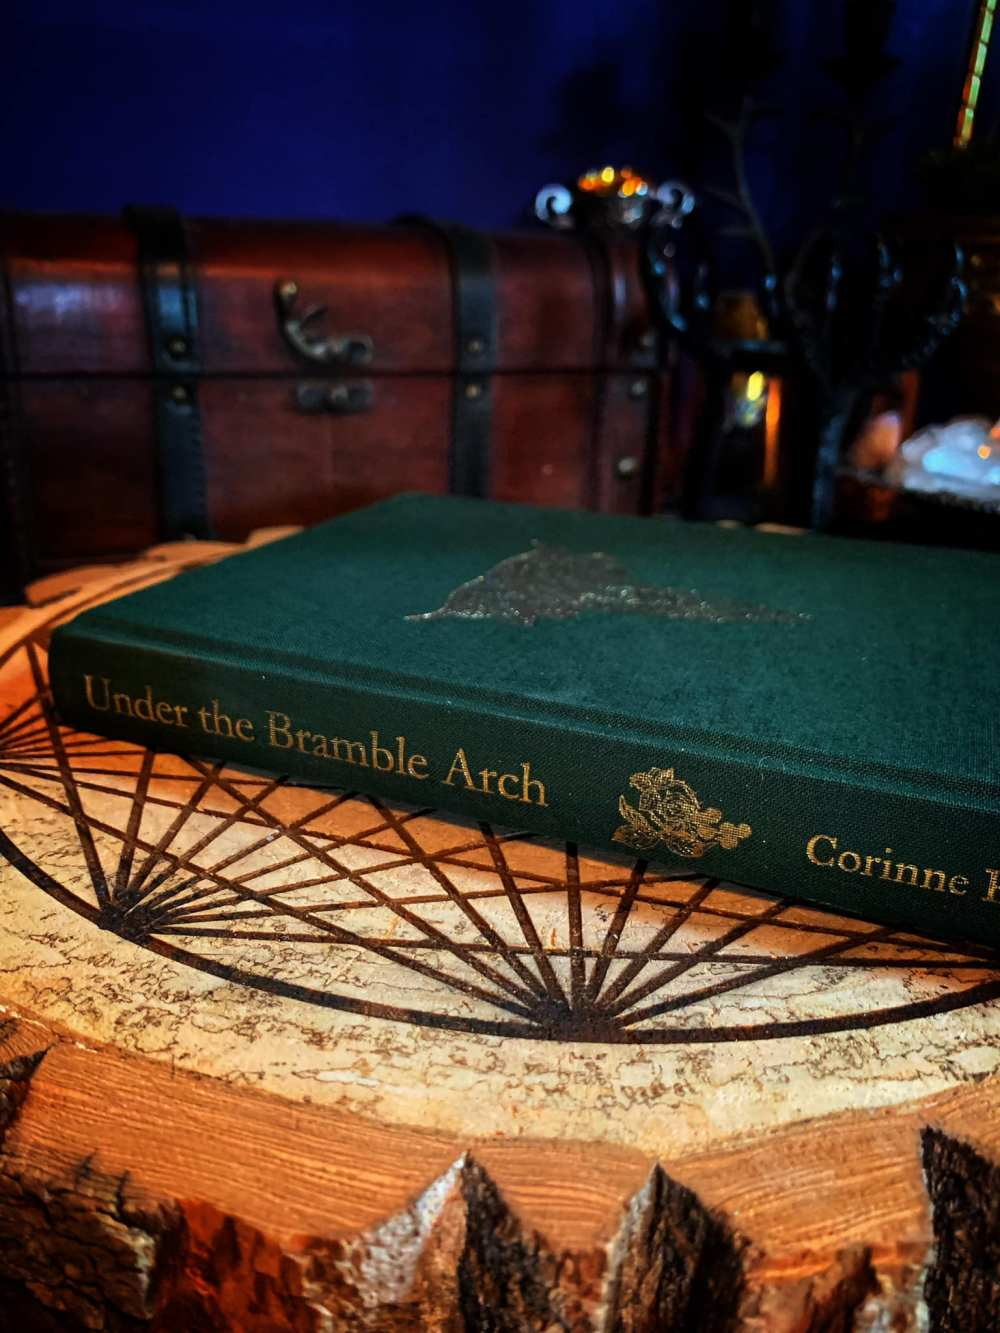 Under the Bramble Arch ~ A Folk Grimoire of Wayside Plant Lore and Practicum